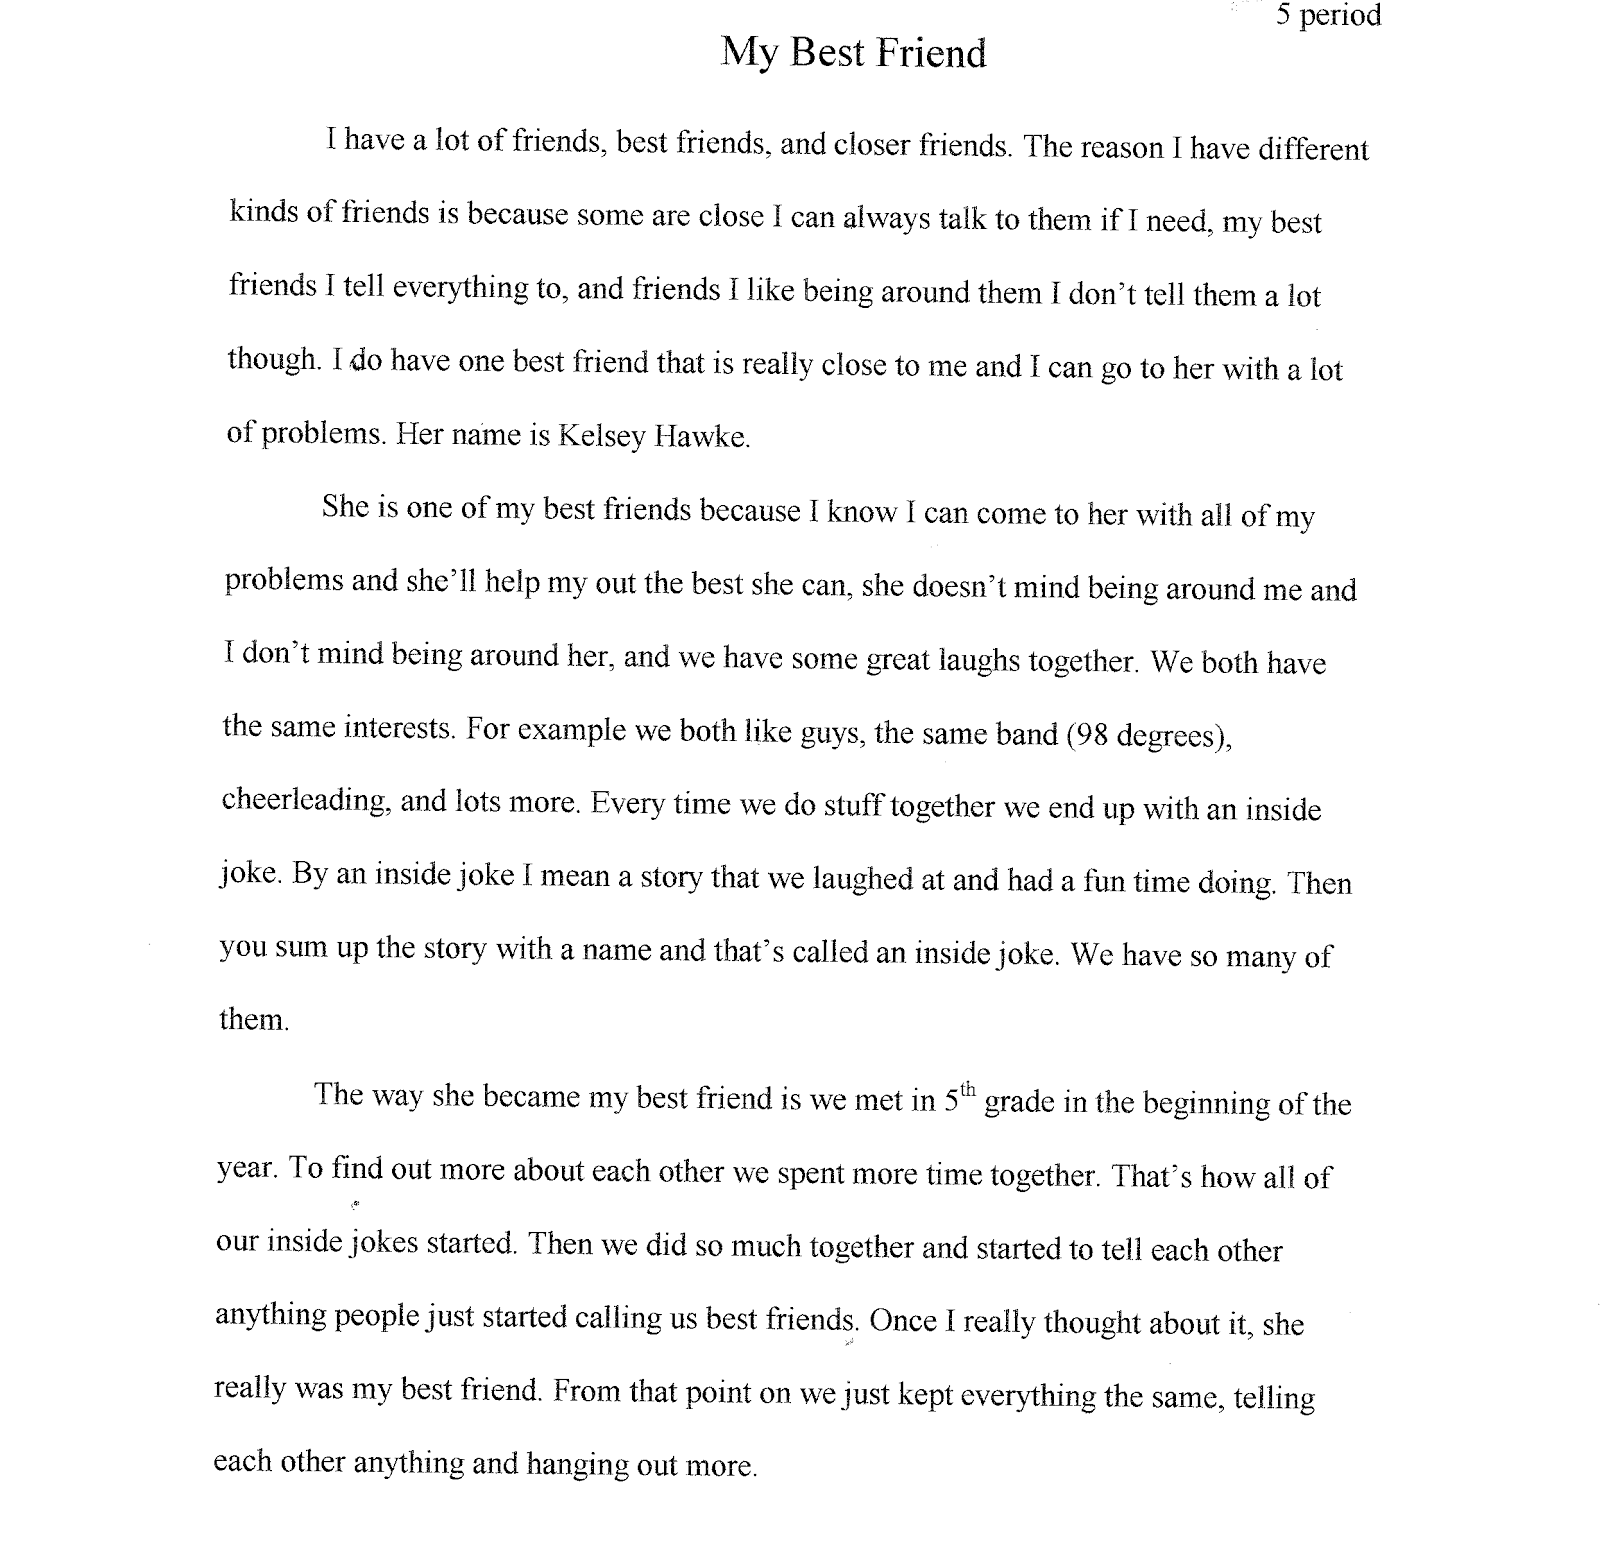 006 Friendship Definition Essay 6th Bestfriend Post1 Formidable Extended True Full